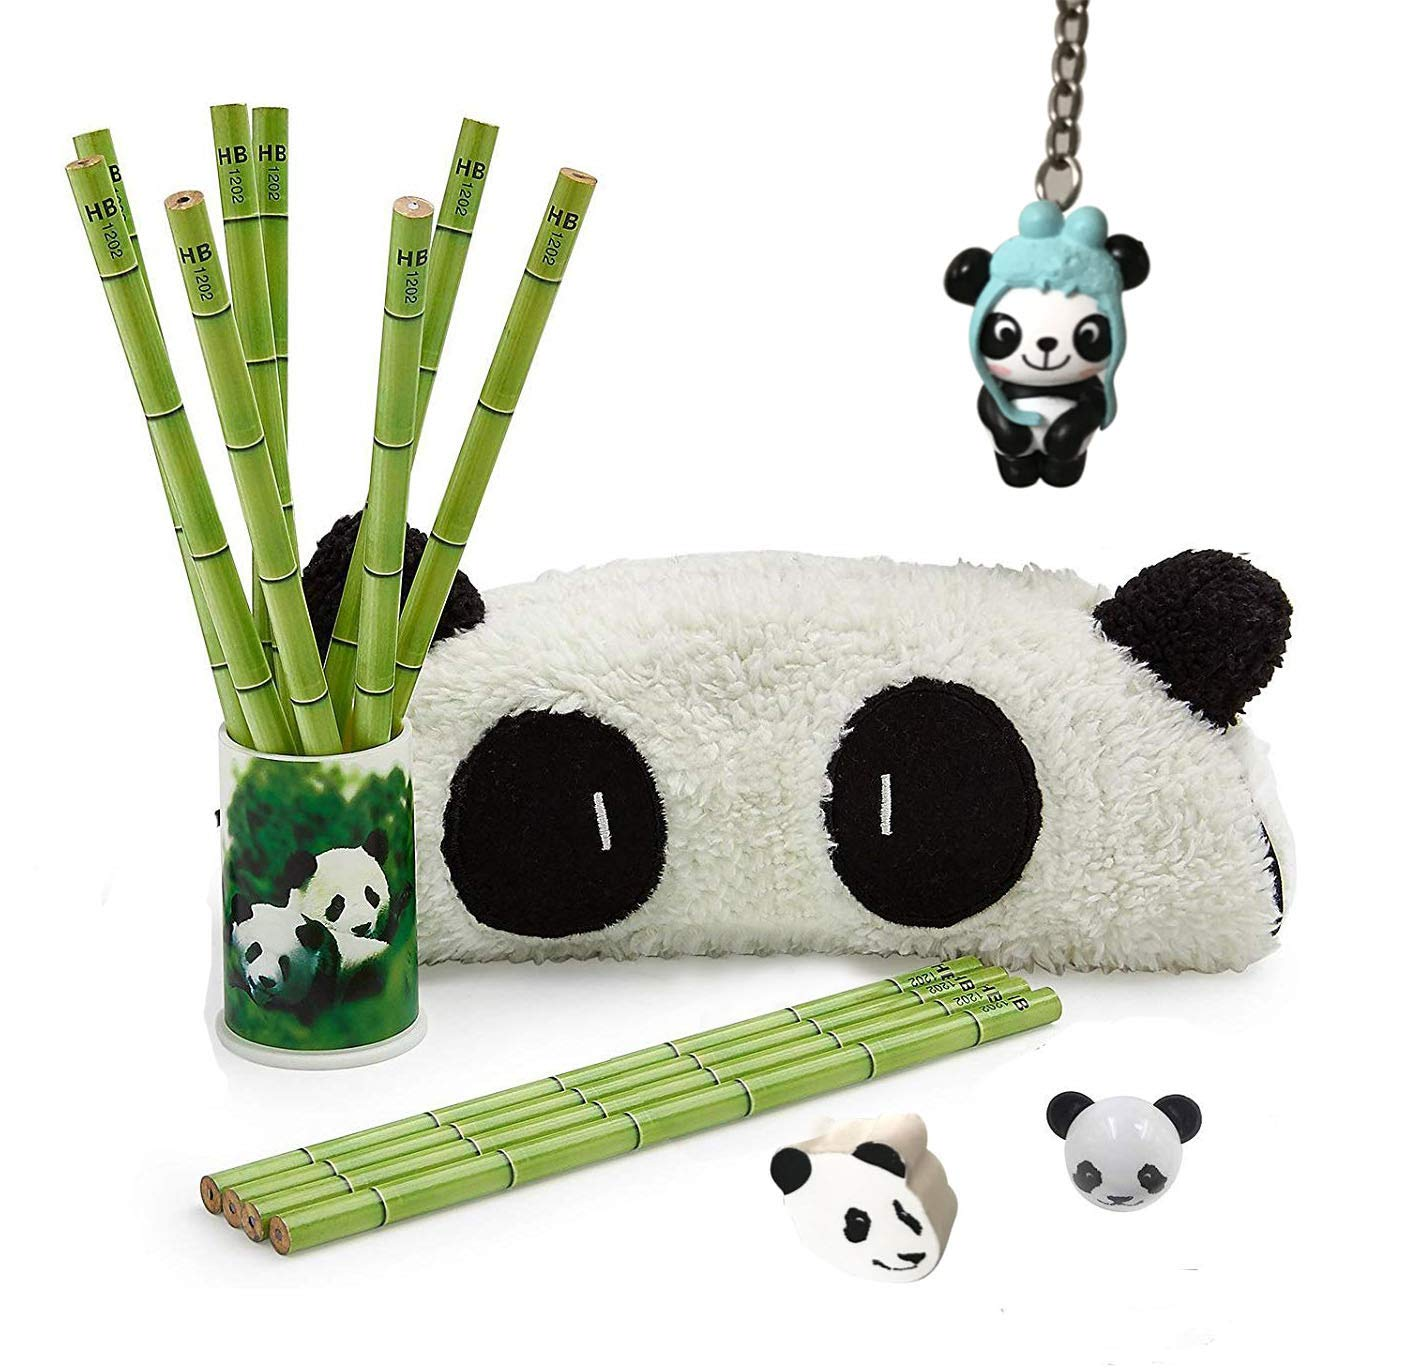 Panda Party Supplies Favors Included 12 Panda Bamboo Pencils 1 Panda Pencil Holder 1 Panda Pencil Case 1 Panda Sharpener 1 Panda Earser 1 Panda Keychain for Kid Teens Birthday Party (Style-2)